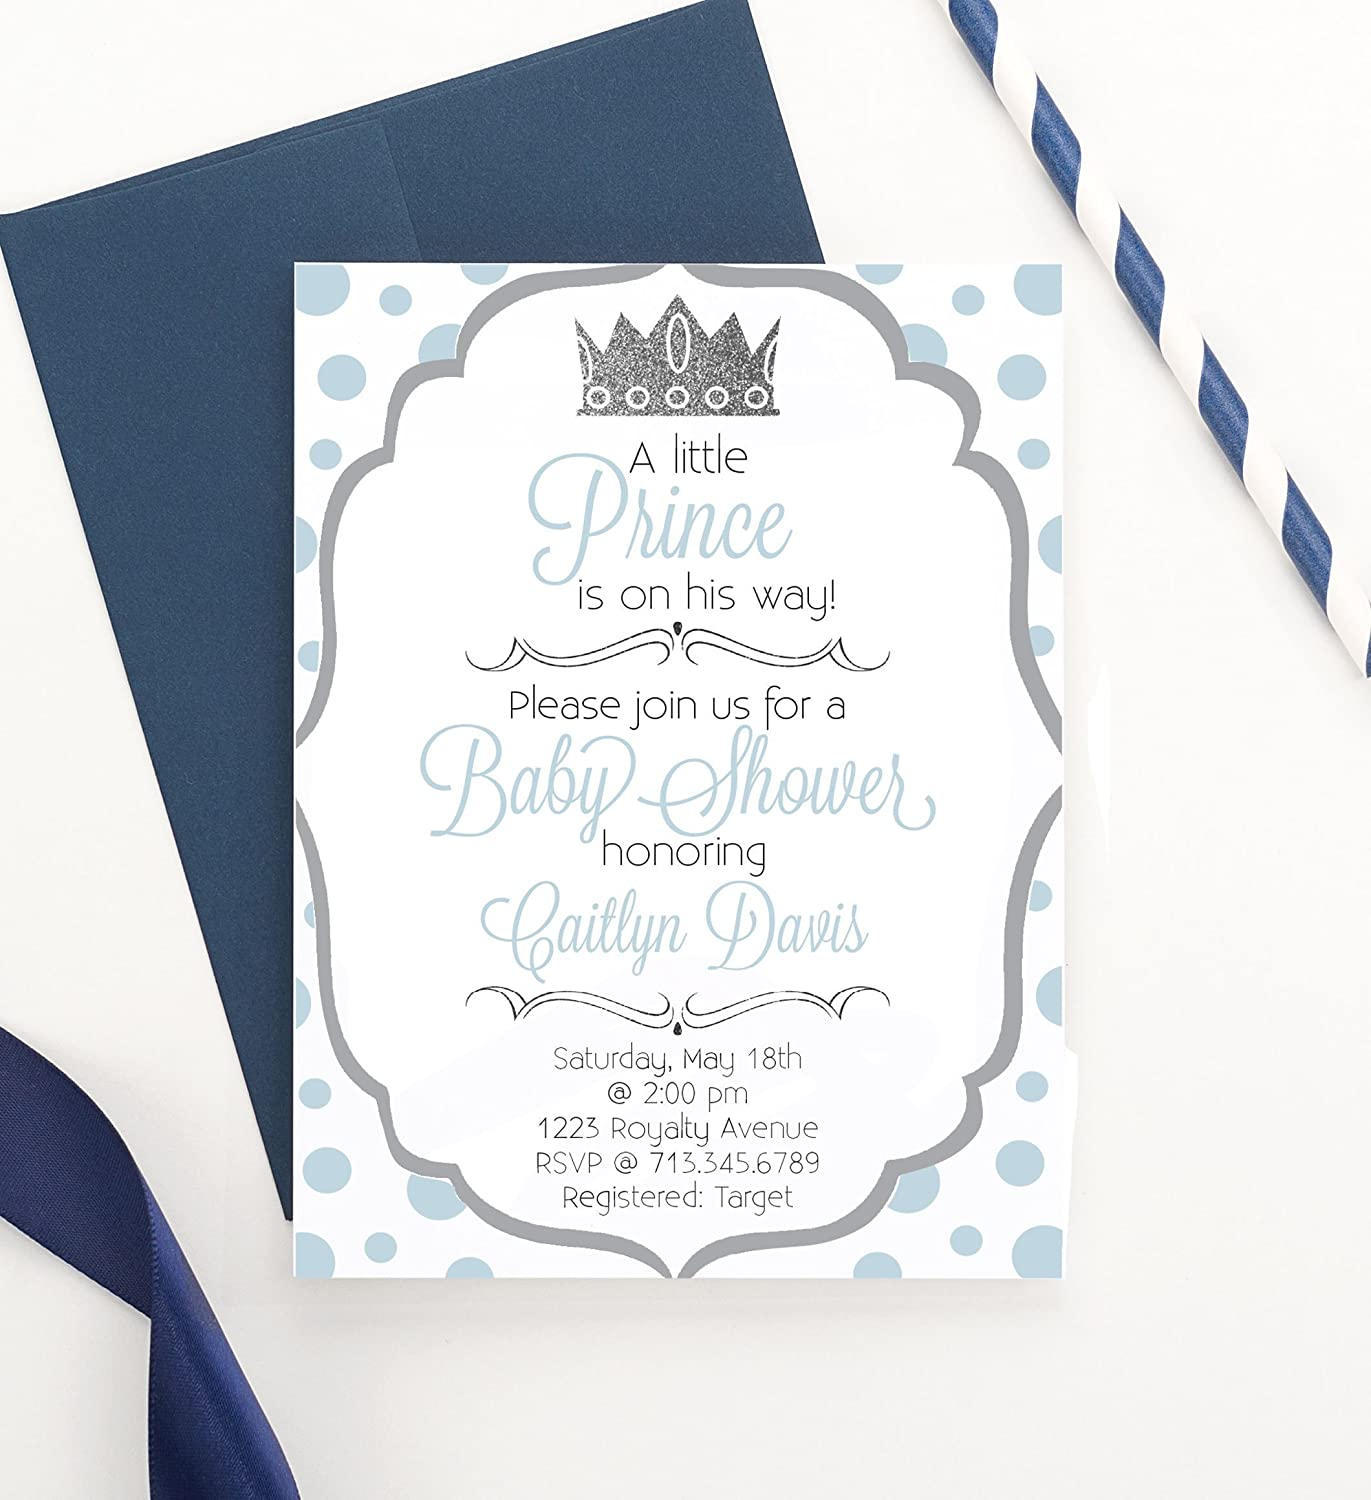 Little Prince Baby Shower Invitations, Prince Baby Shower Invitations, Royal  Prince Baby Shower Invitations, Modern Baby Shower Invitation, Your choice  of ...